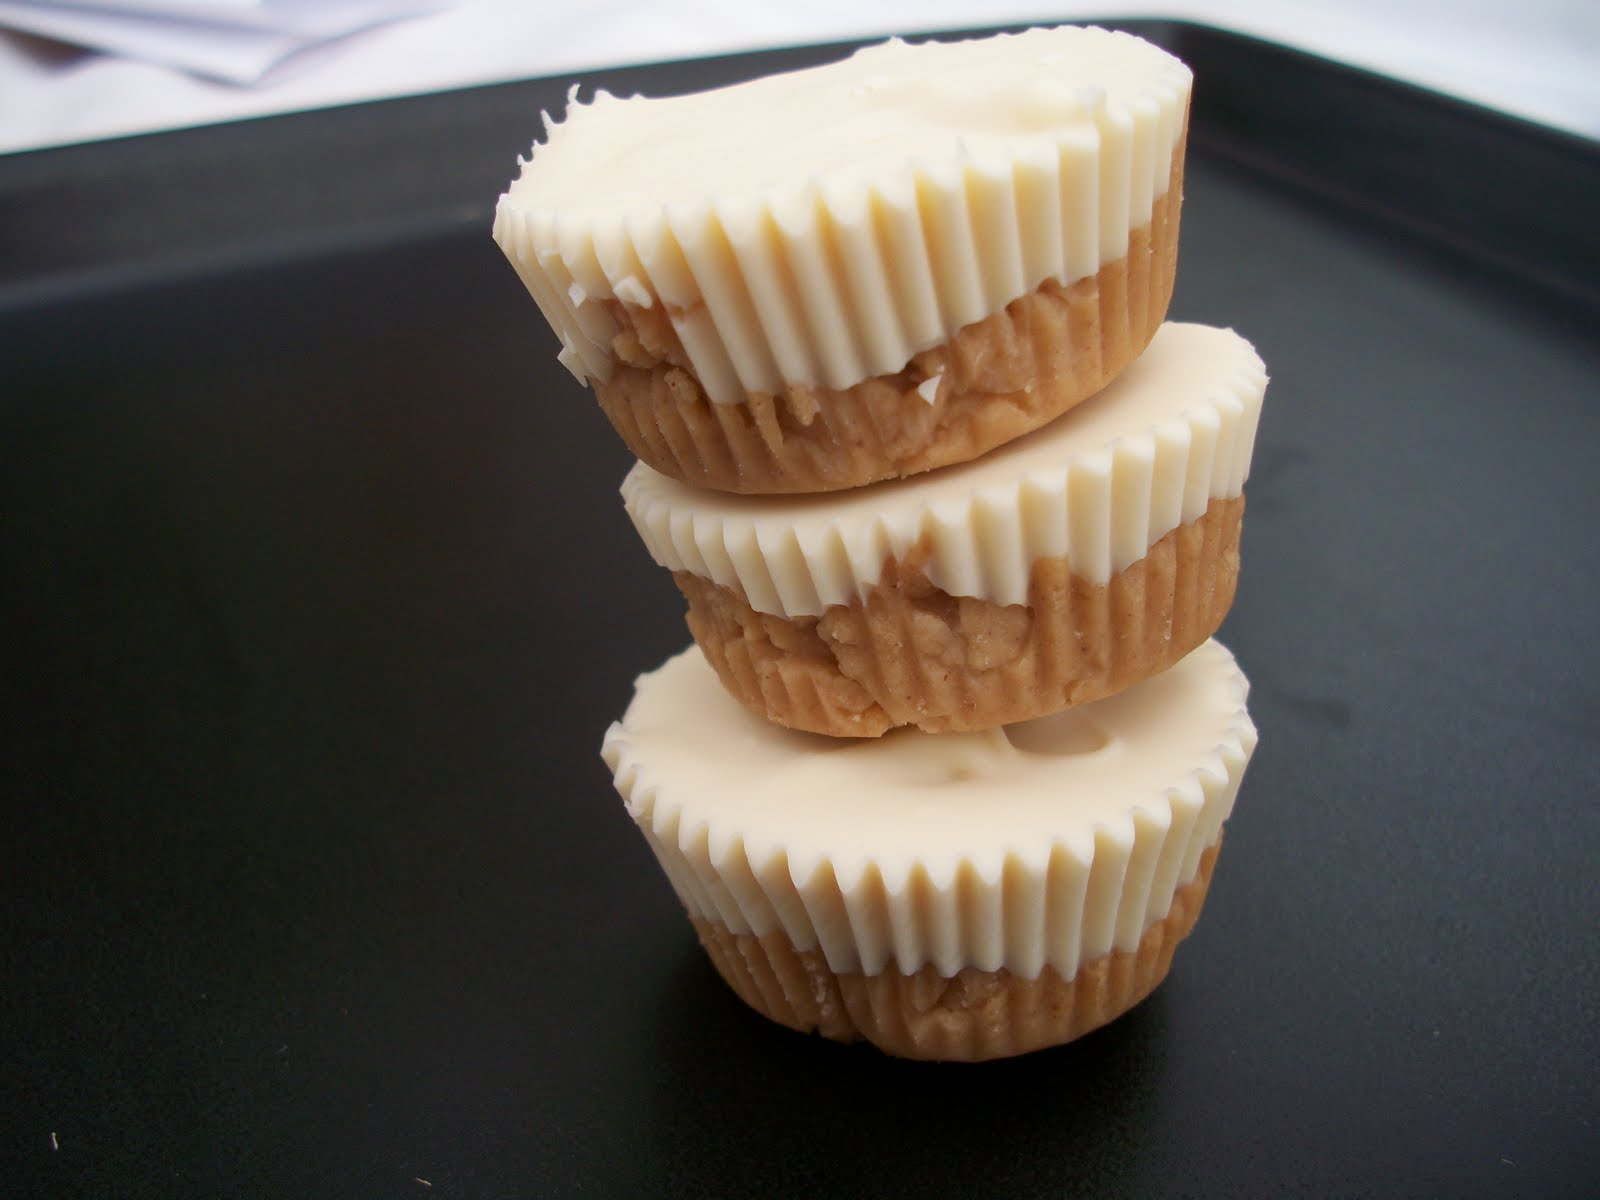 peanut butter cups! White chocolate and peanut butter were meant to be ...